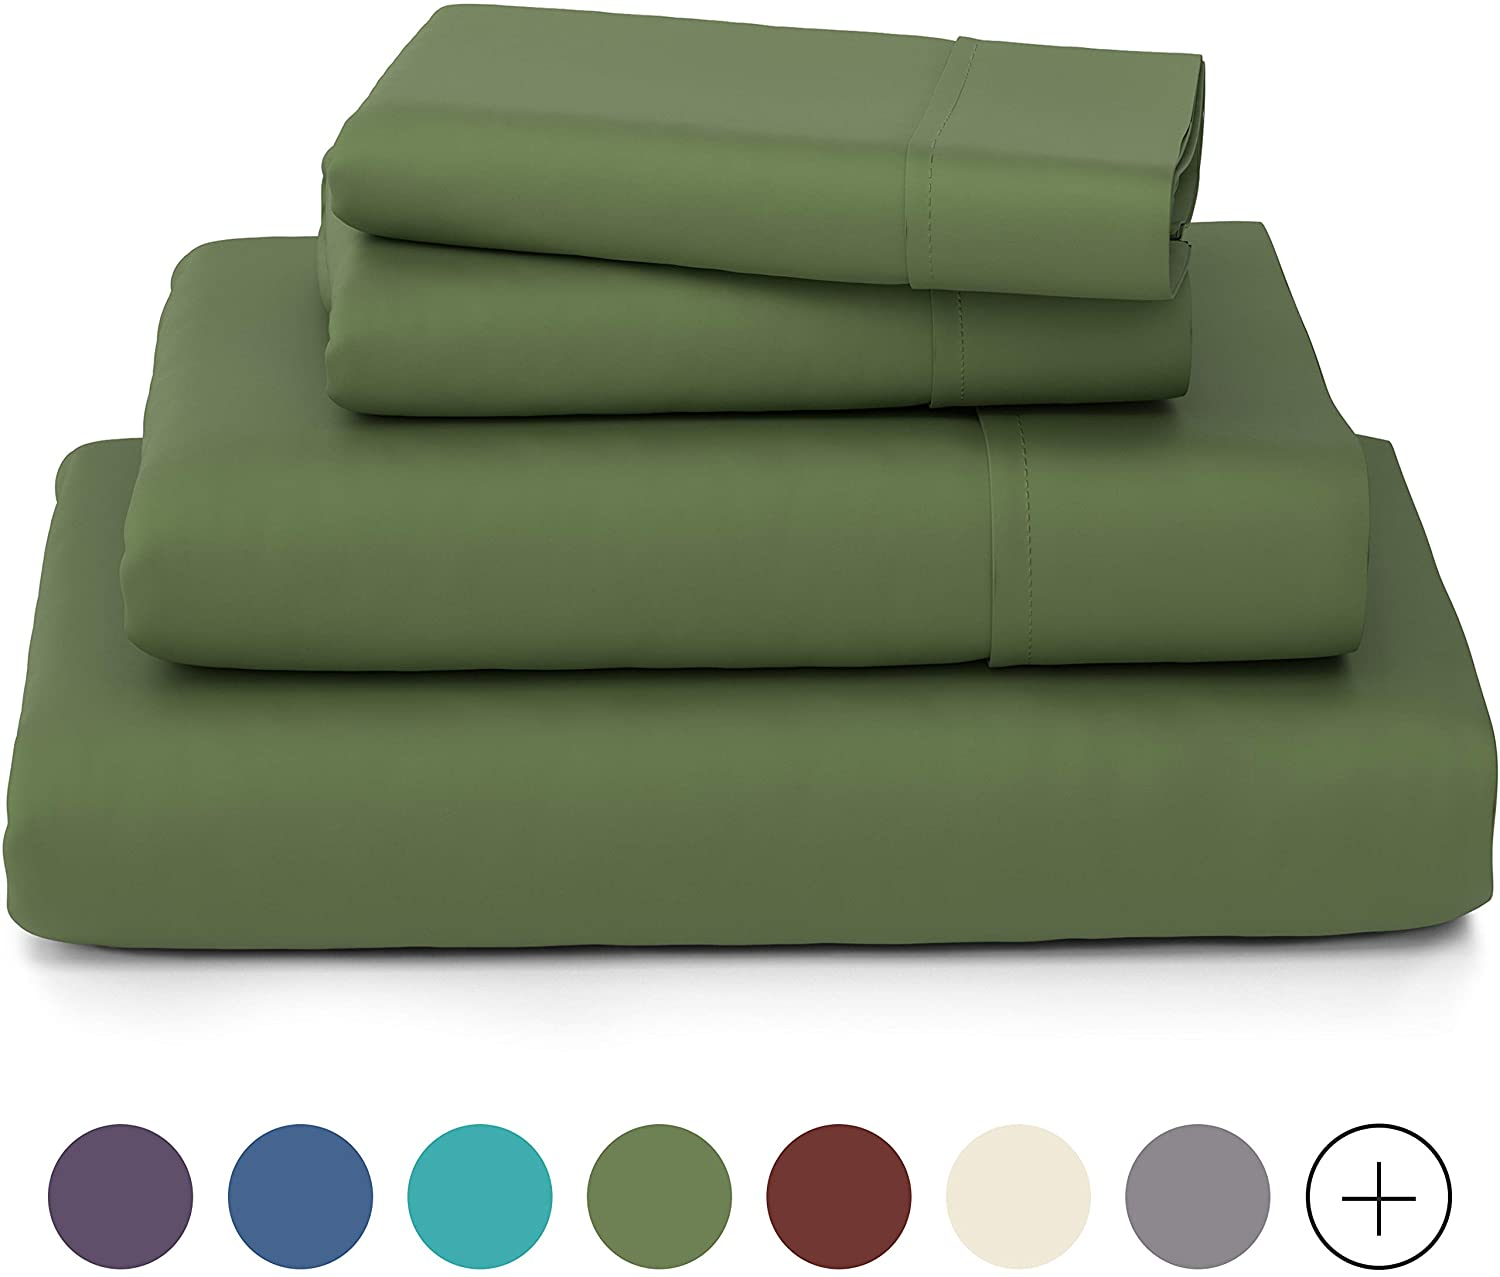 Cosy House Collection Luxury Bamboo Bed Sheet Set - Hypoallergenic Bedding Blend from Natural Bamboo Fiber - Resists Wrinkles - 4 Piece - 1 Fitted Sheet, 1 Flat, 2 Pillowcases - King, Sage Green